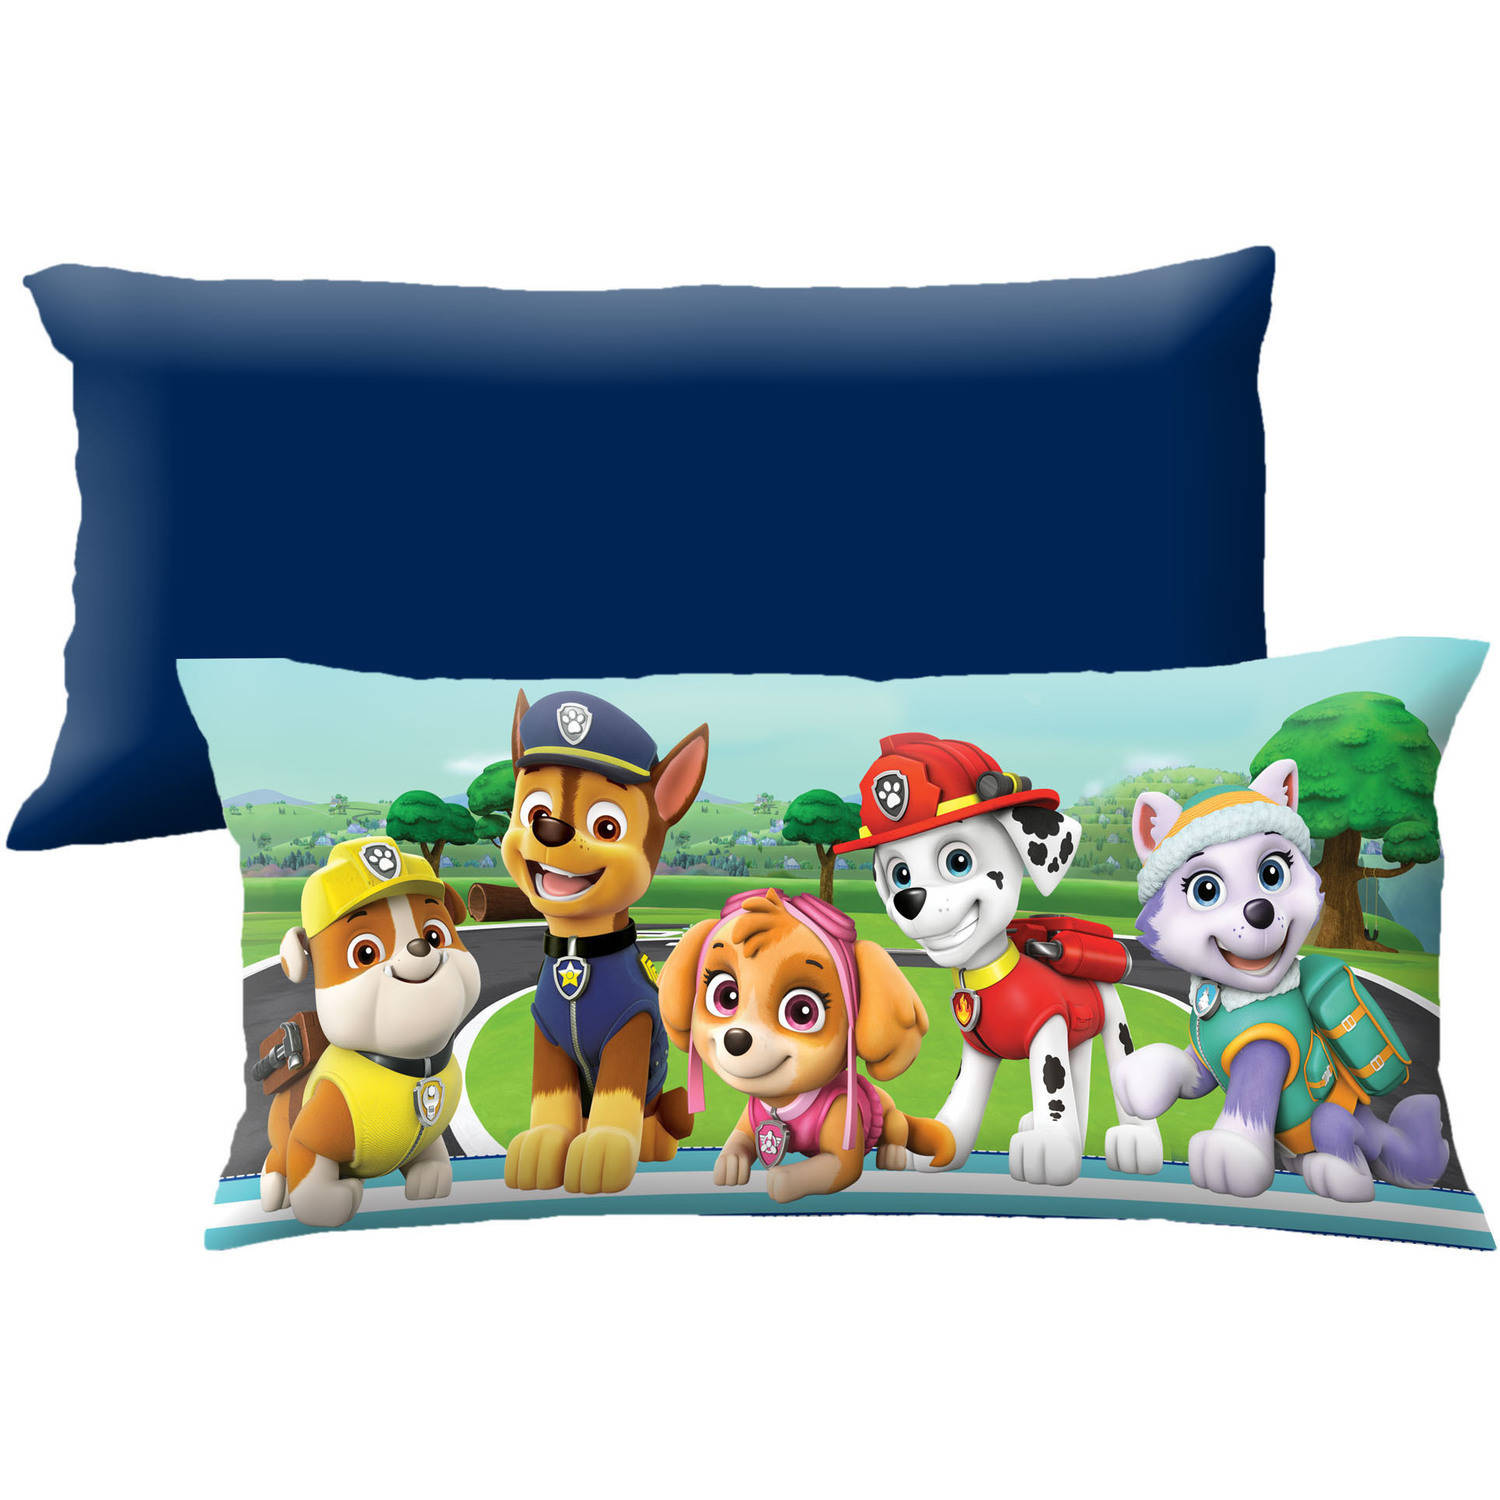 "Nickelodeon's Paw Patrol ""Puppy Pals' Body Pillow"